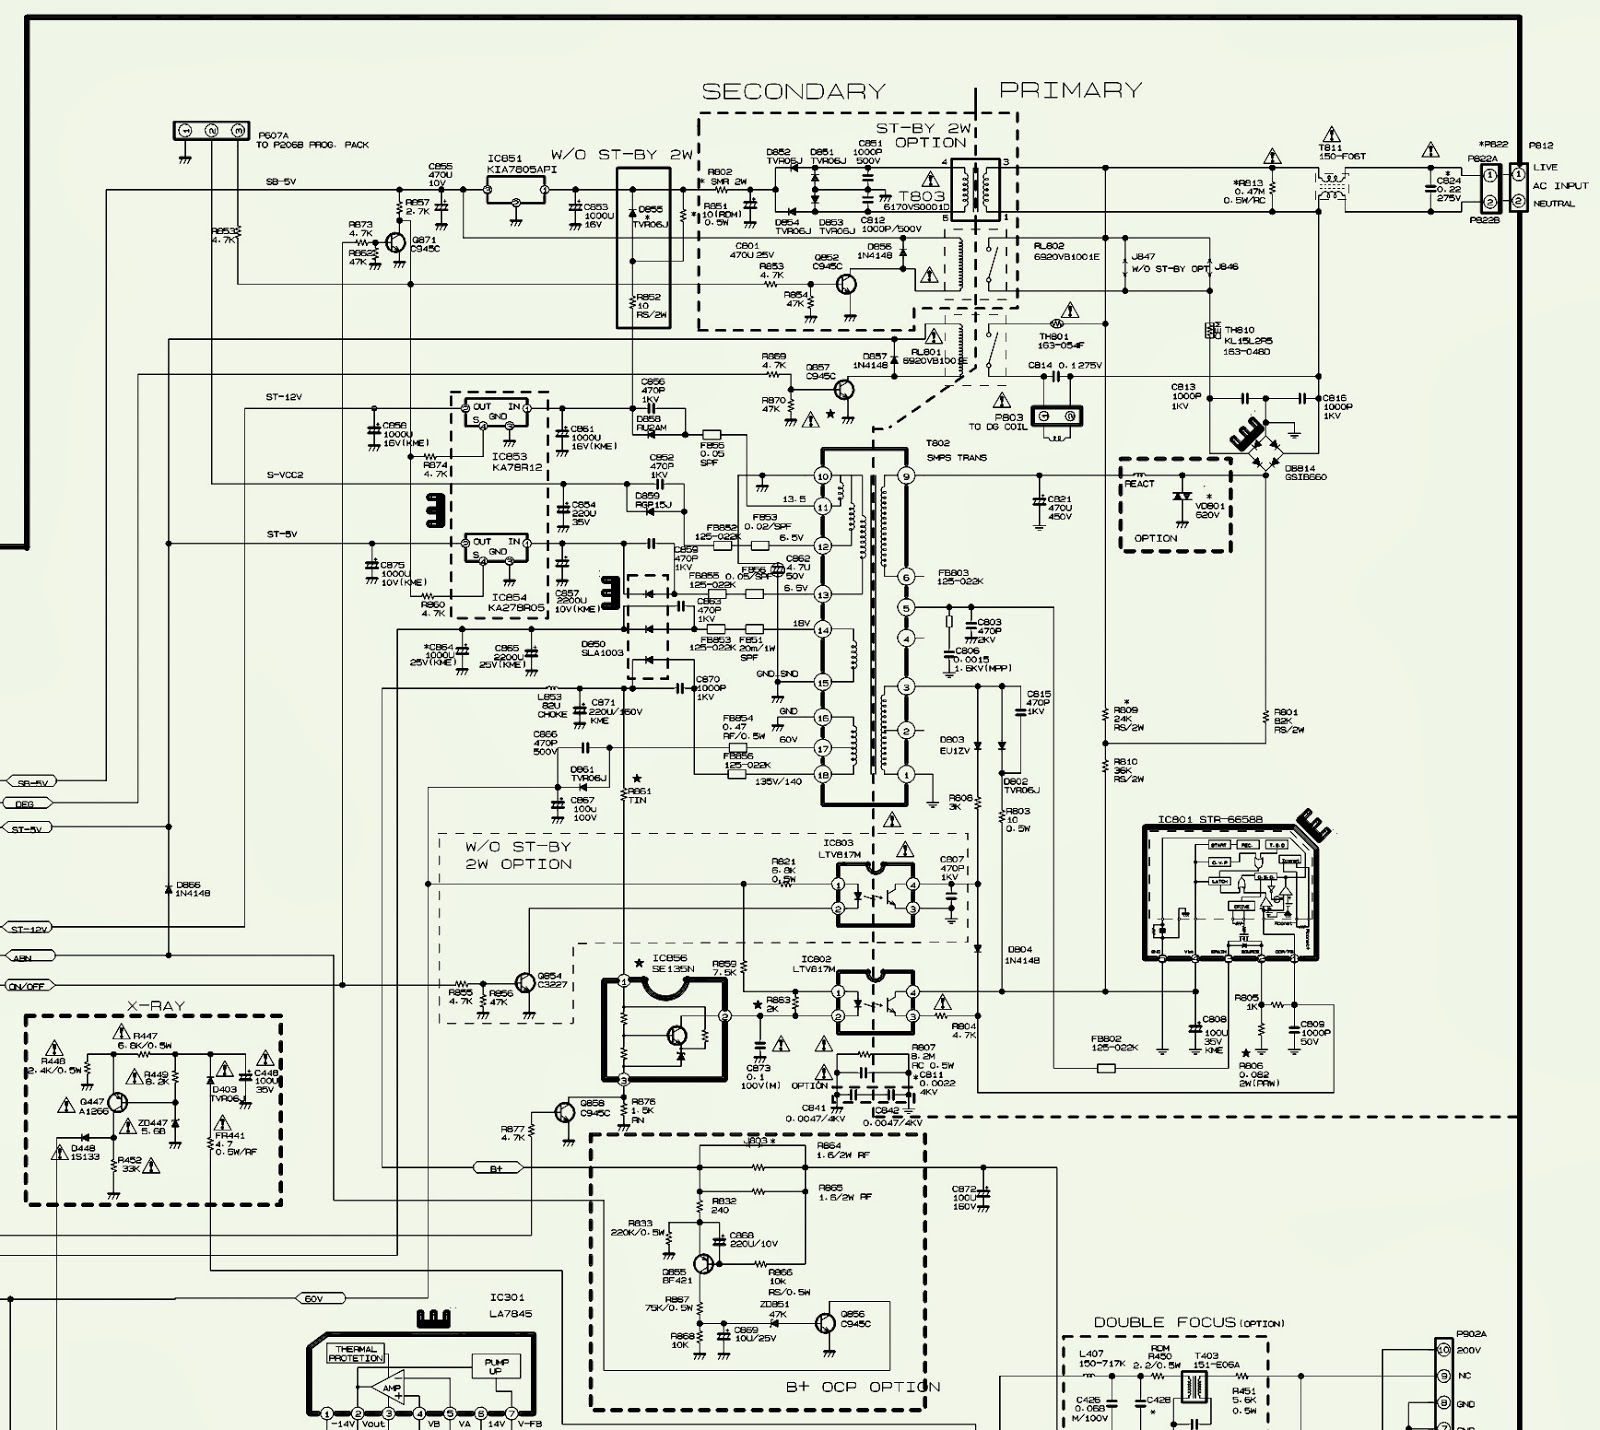 lg tv diagram wiring diagram libraries wiring diagram lg tv wiring diagrams bestlg tv lm6700 wiring diagram wiring diagrams 1967 ford mustang